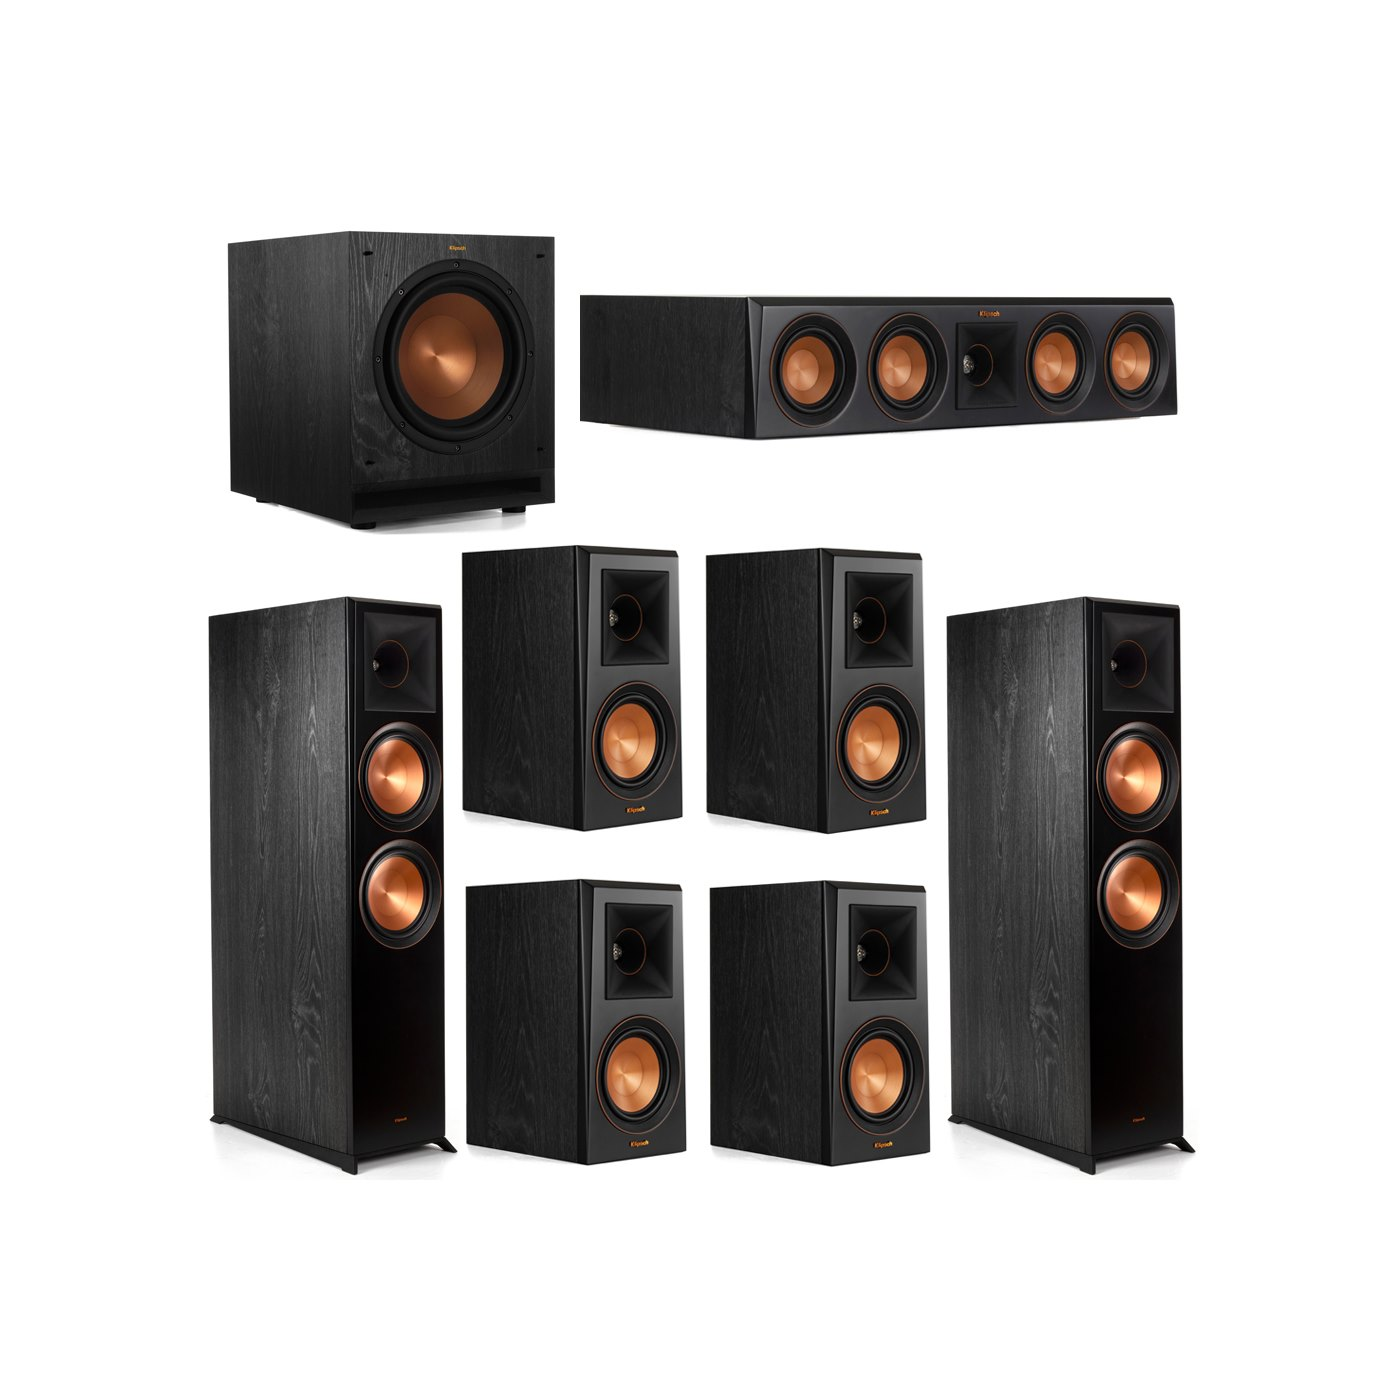 Klipsch 7.1 System with 2 RP-8000F Floorstanding Speakers, 1 Klipsch RP-404C Center Speaker, 4 Klipsch RP-500M Surround Speakers, 1 Klipsch SPL-100 Subwoofer